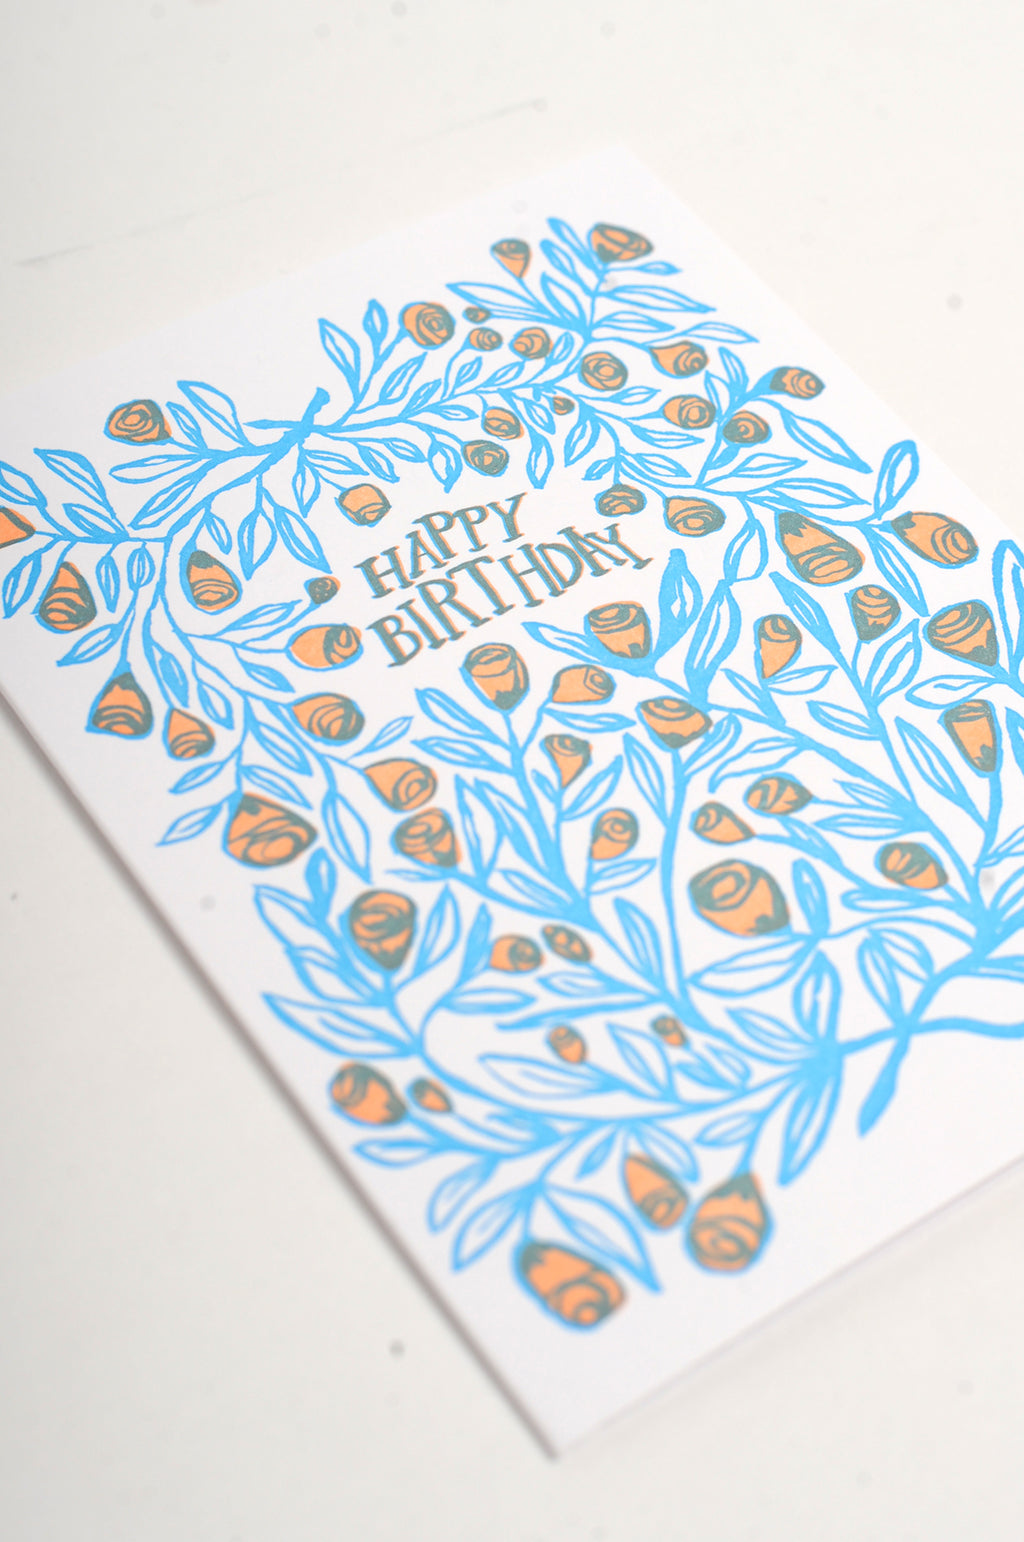 Rose Bush Birthday Card